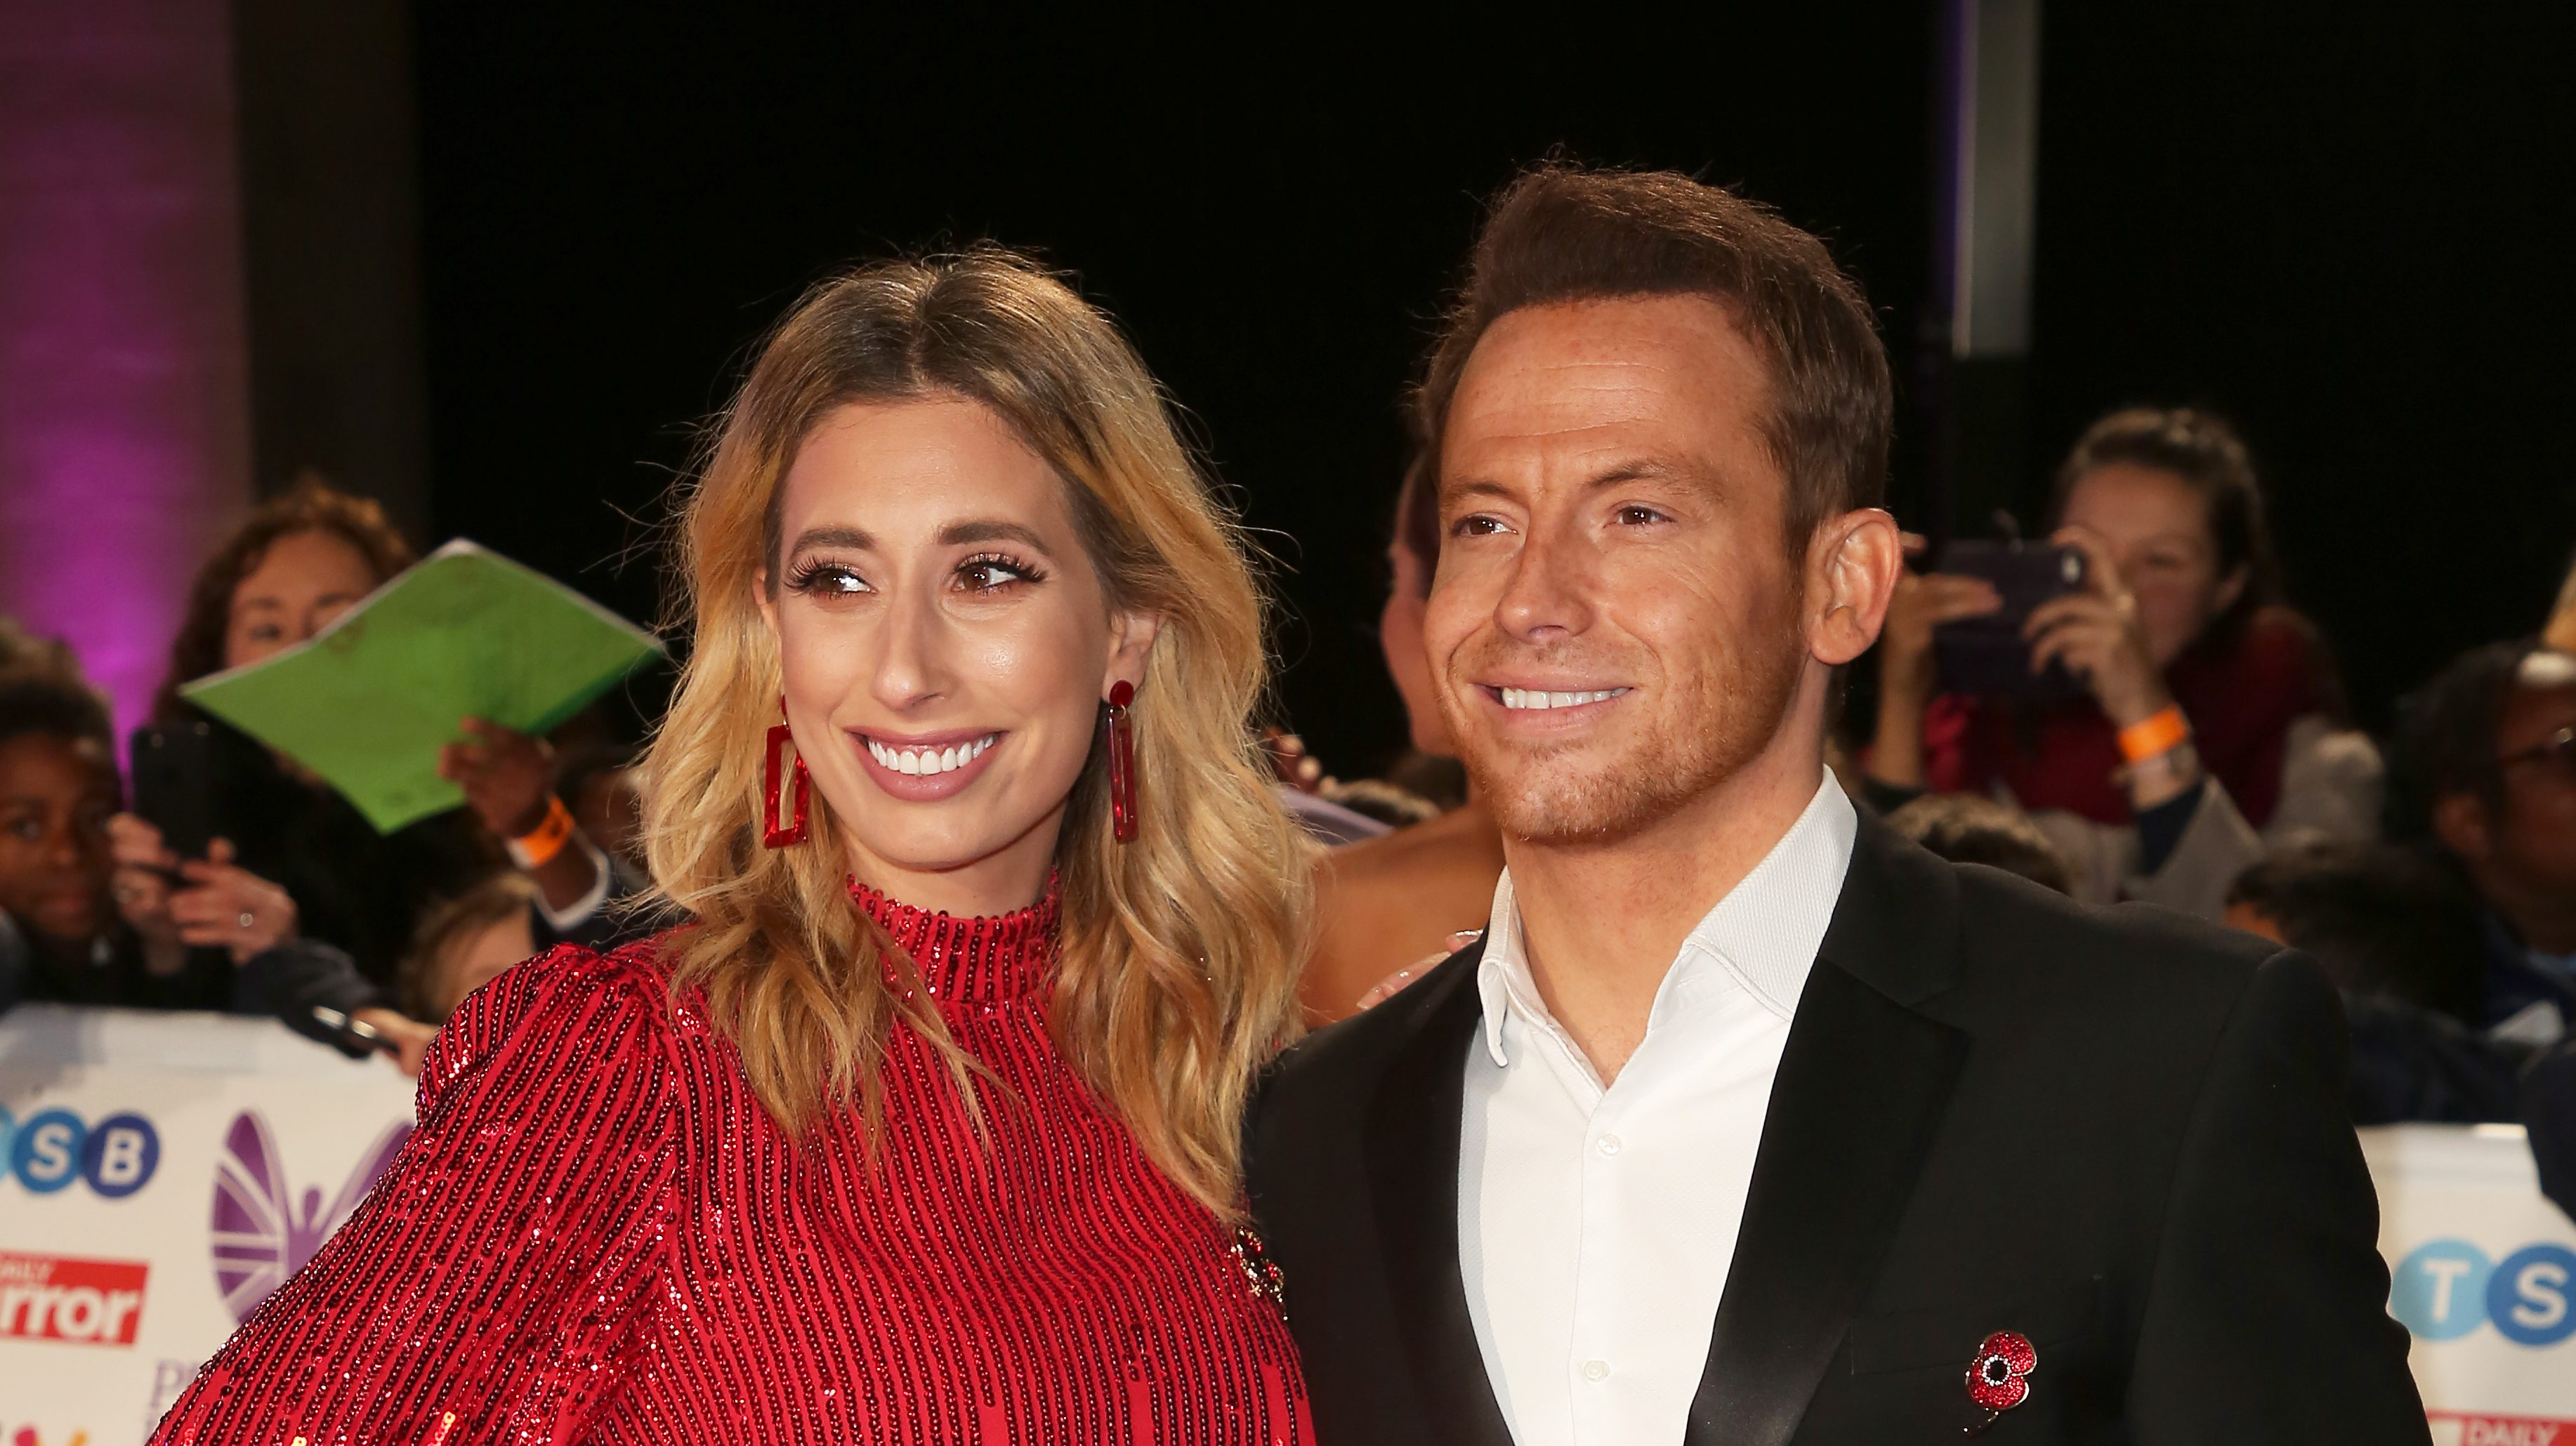 Fans beg Joe Swash to propose to Stacey Solomon after birthday tribute